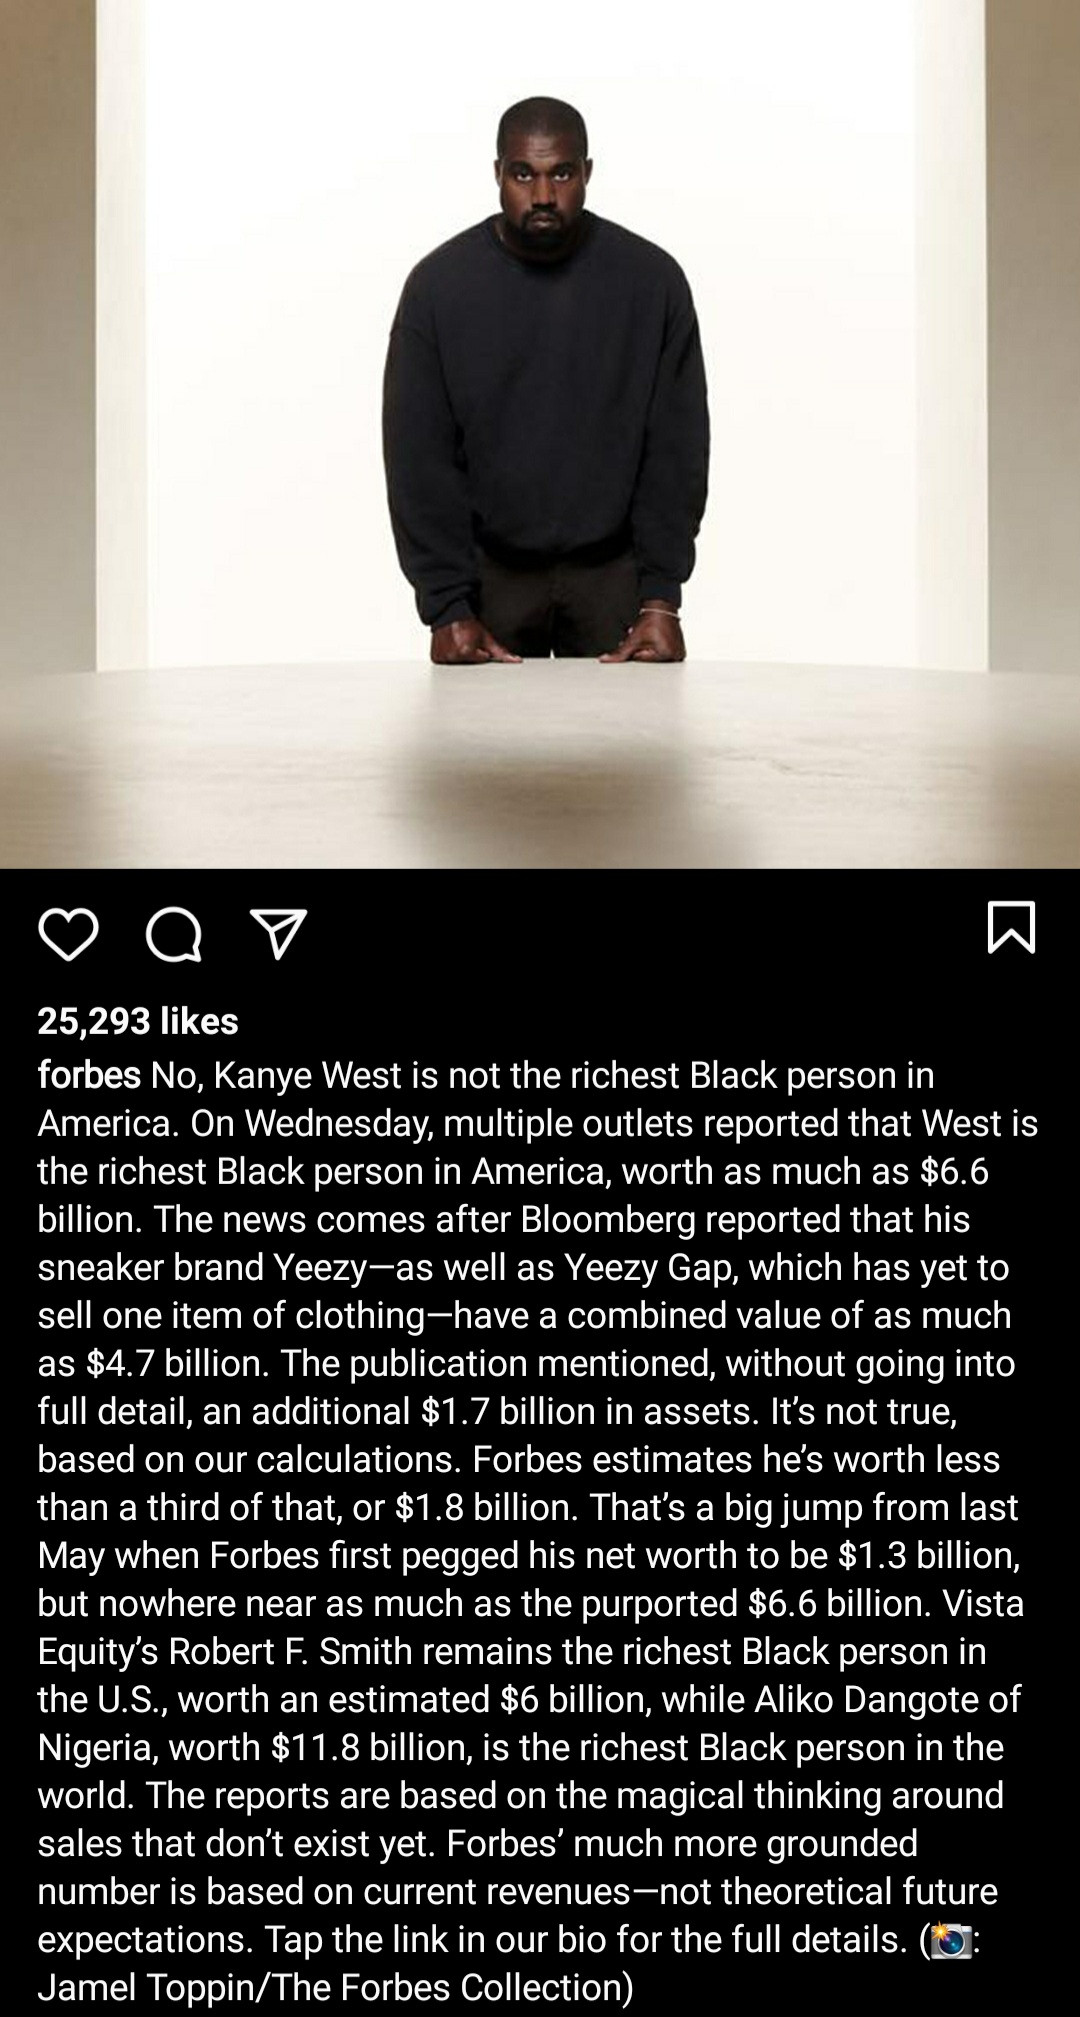 """Kanye West is NOT the richest Black person in America"" - Forbes refutes report Kanye"